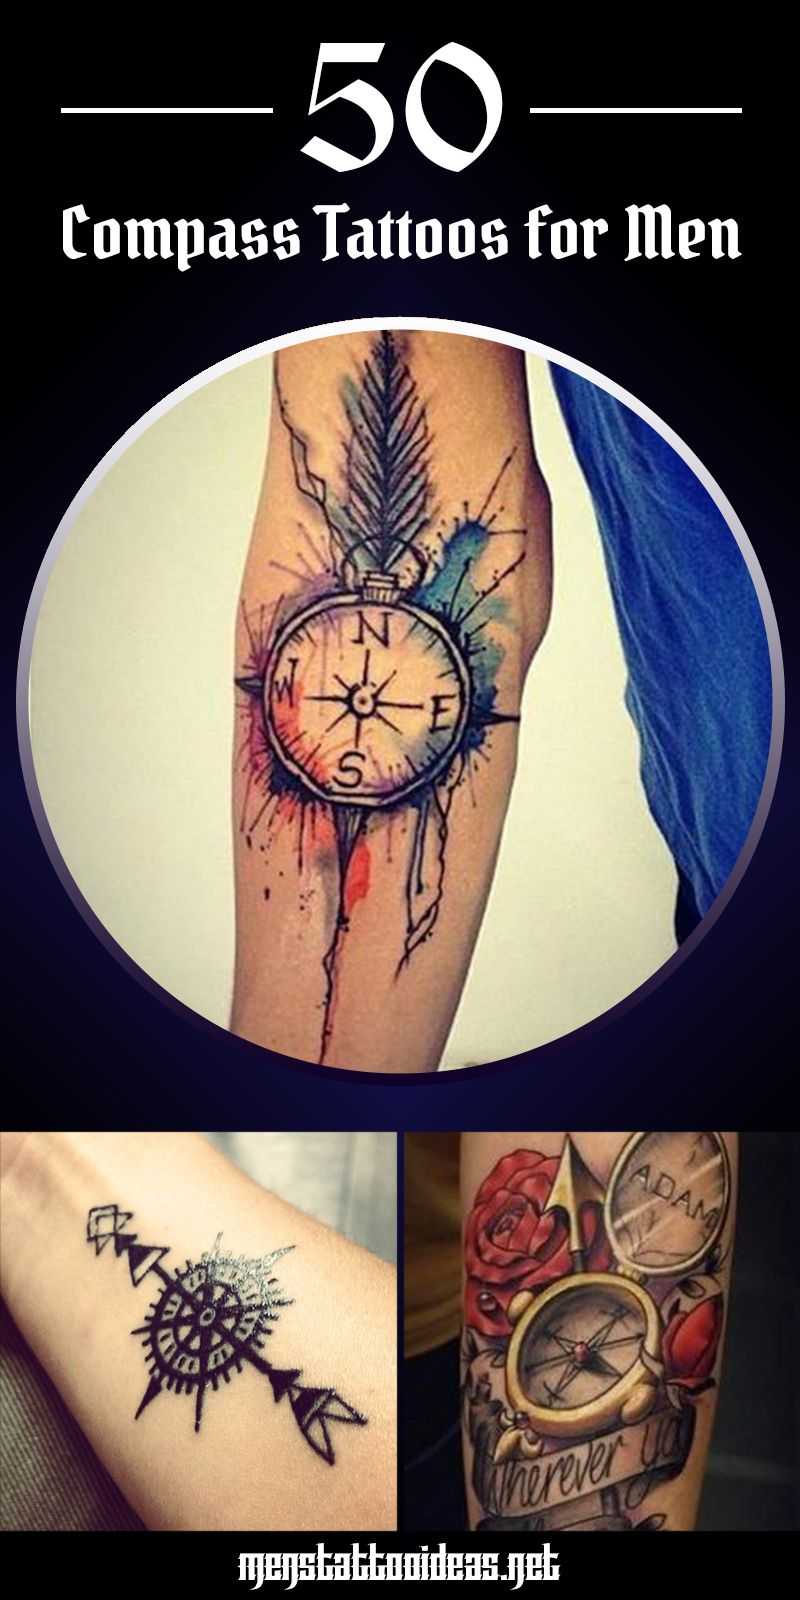 Compass Tattoos for Men Tattoos for guys, Tattoo designs